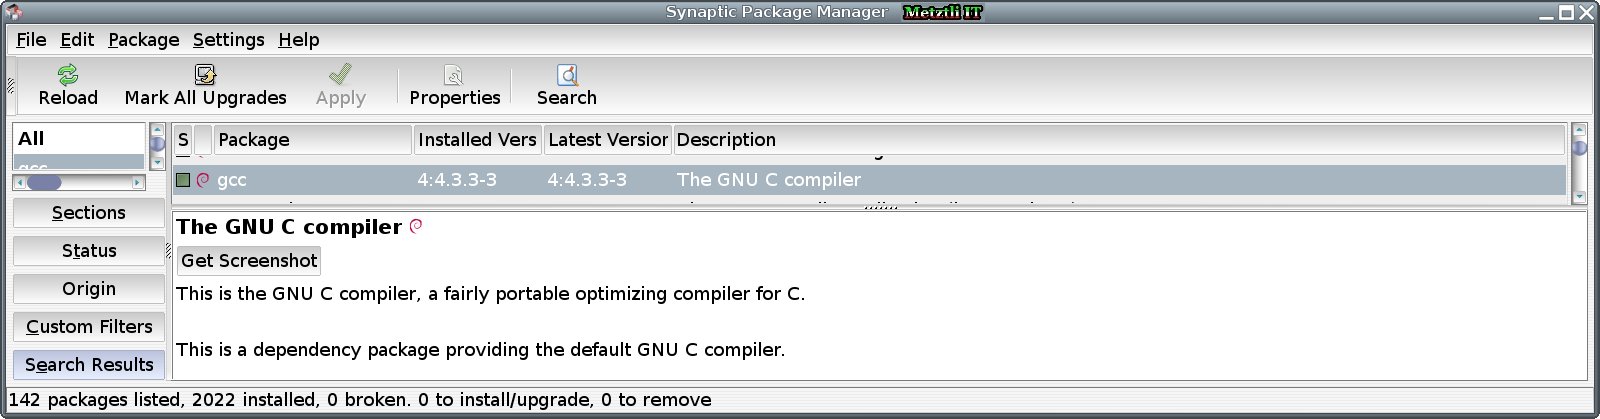 Enabling Sound in GNU/Linux on Legacy Hardware Components.